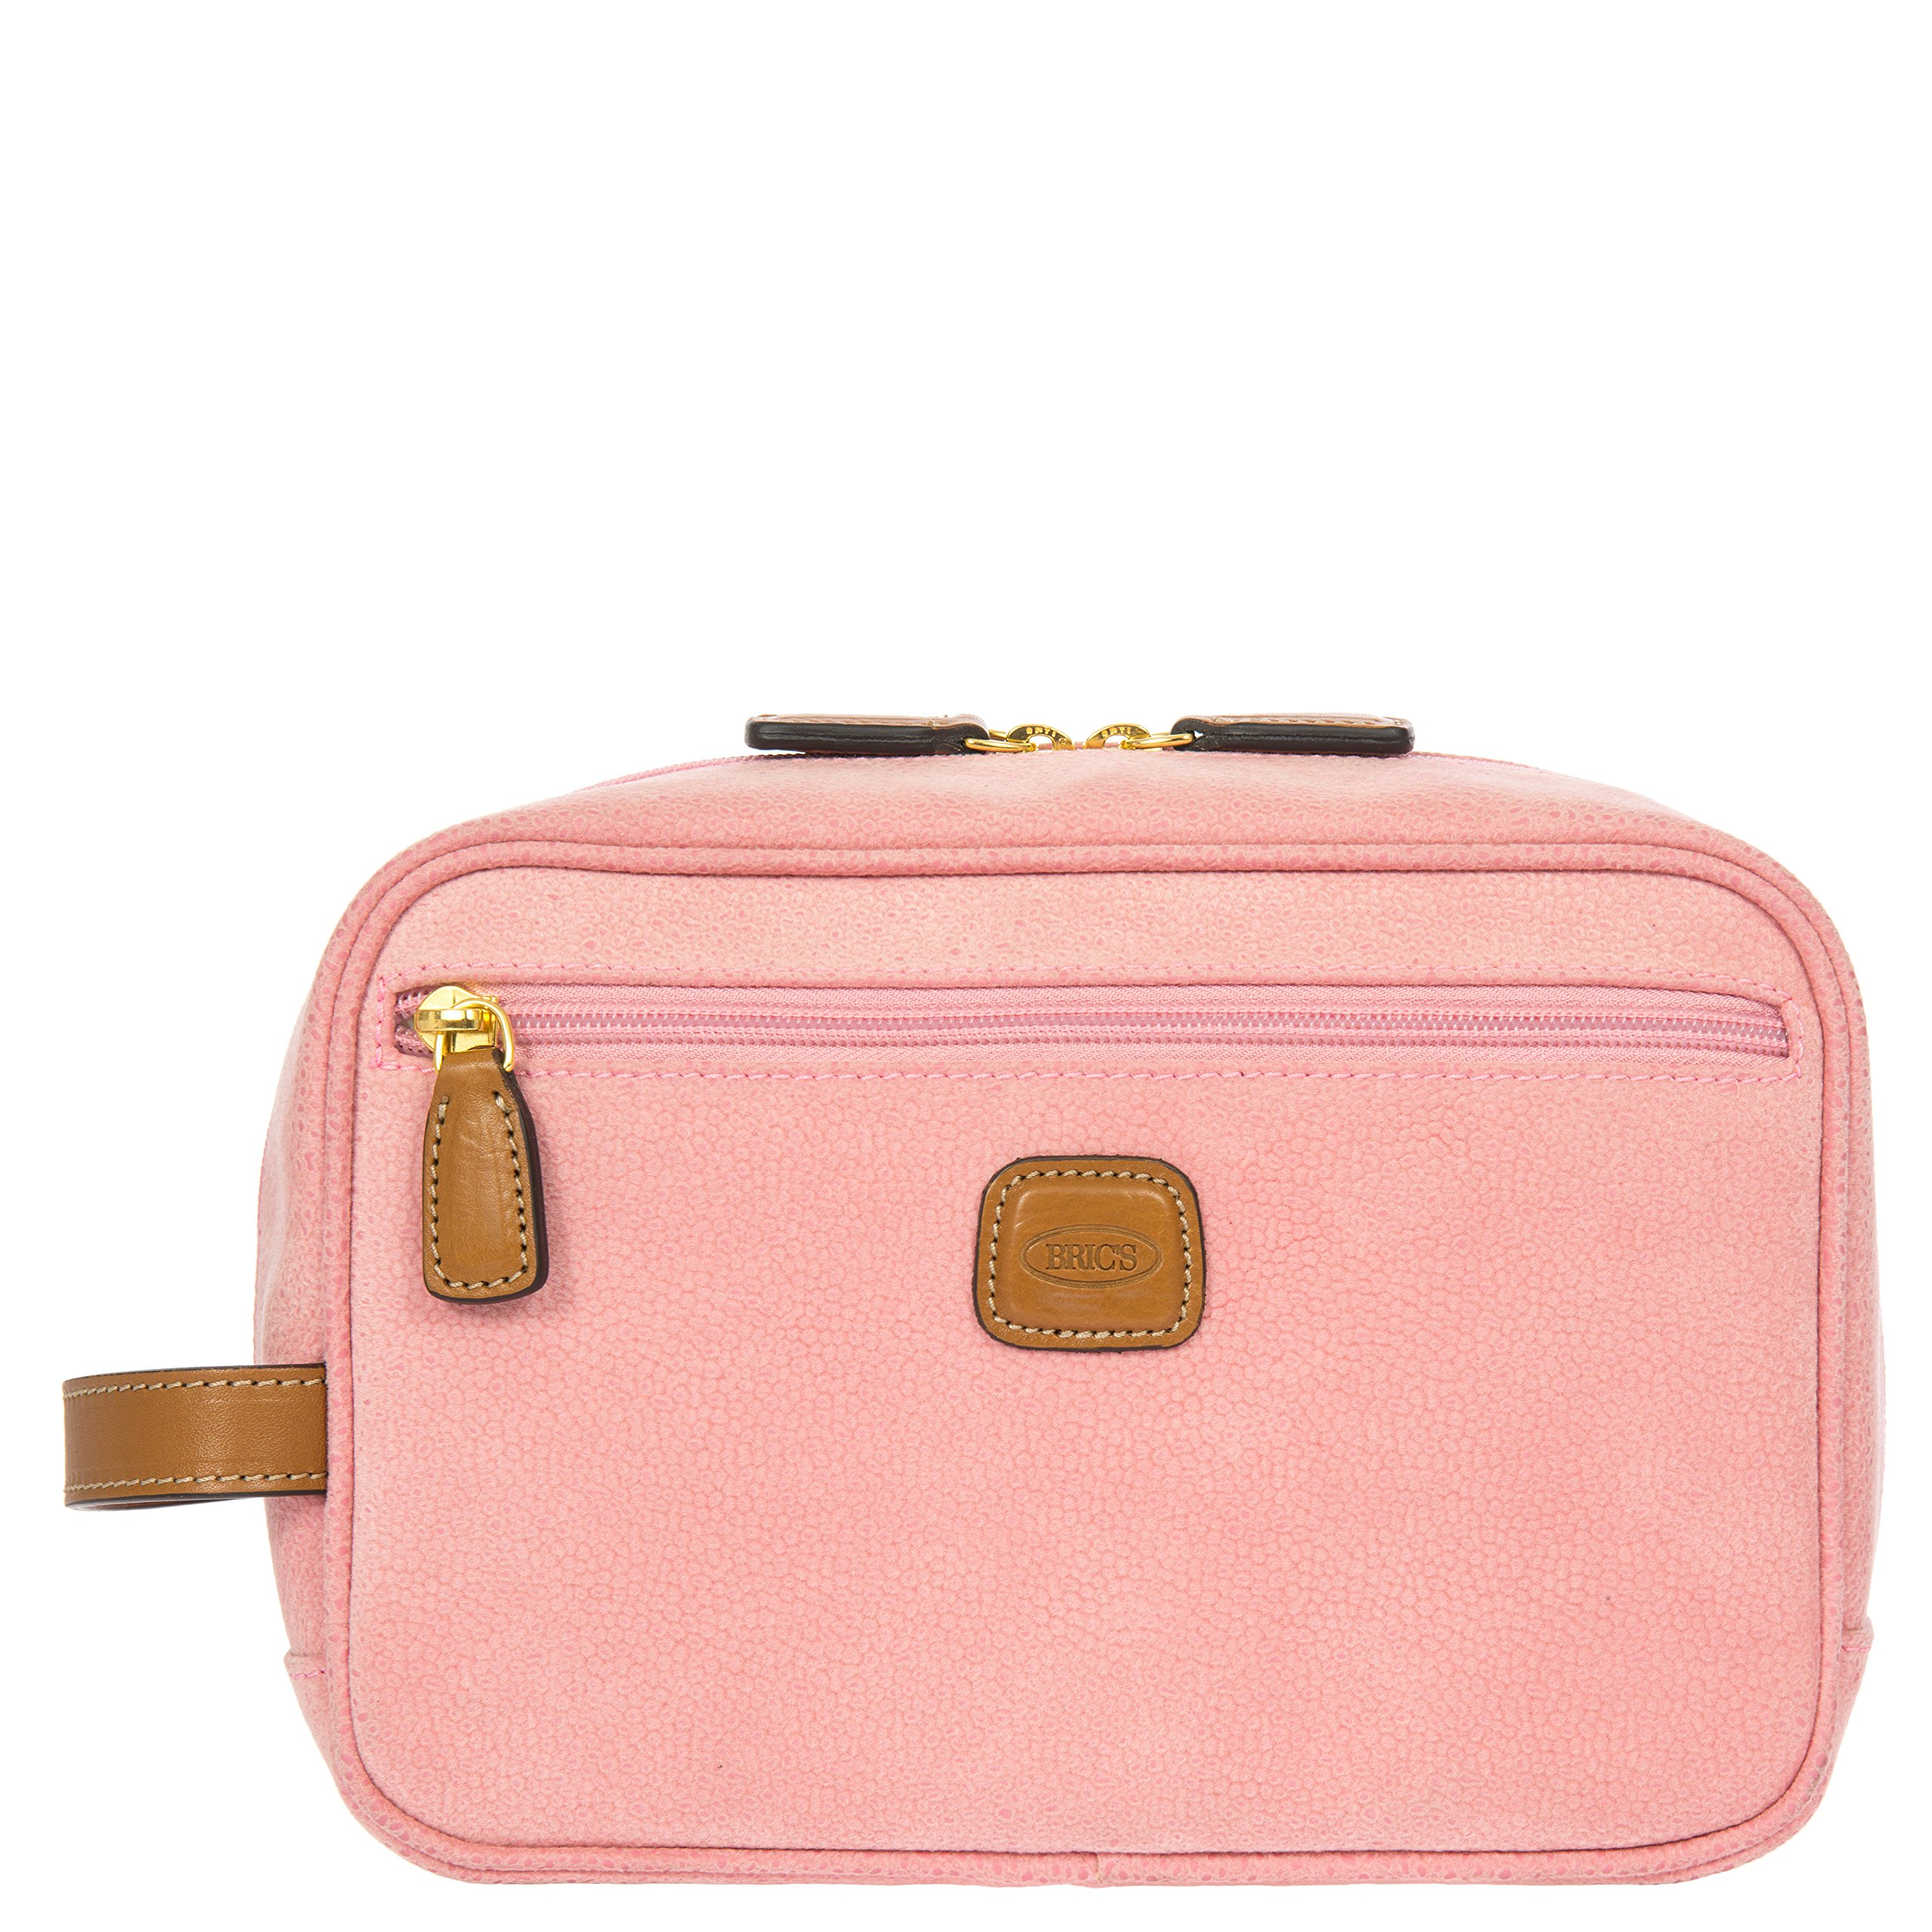 Bric's Women's Life Traditional Toiletry Dopp Kit Travel Shave Case, Pink